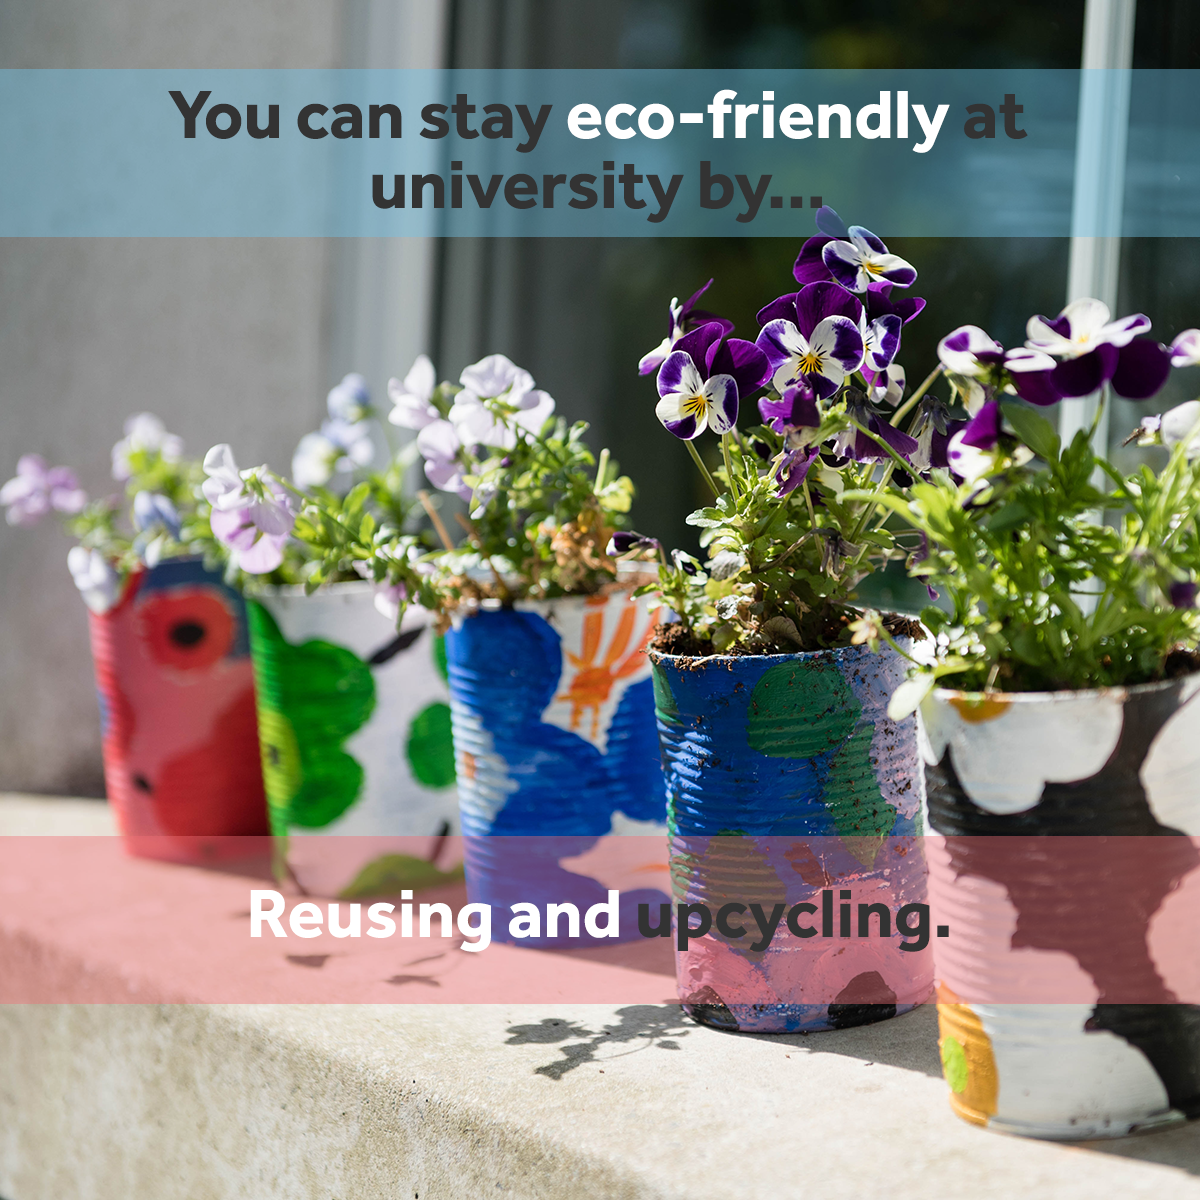 Reuse and upcycle - eco friendly at university